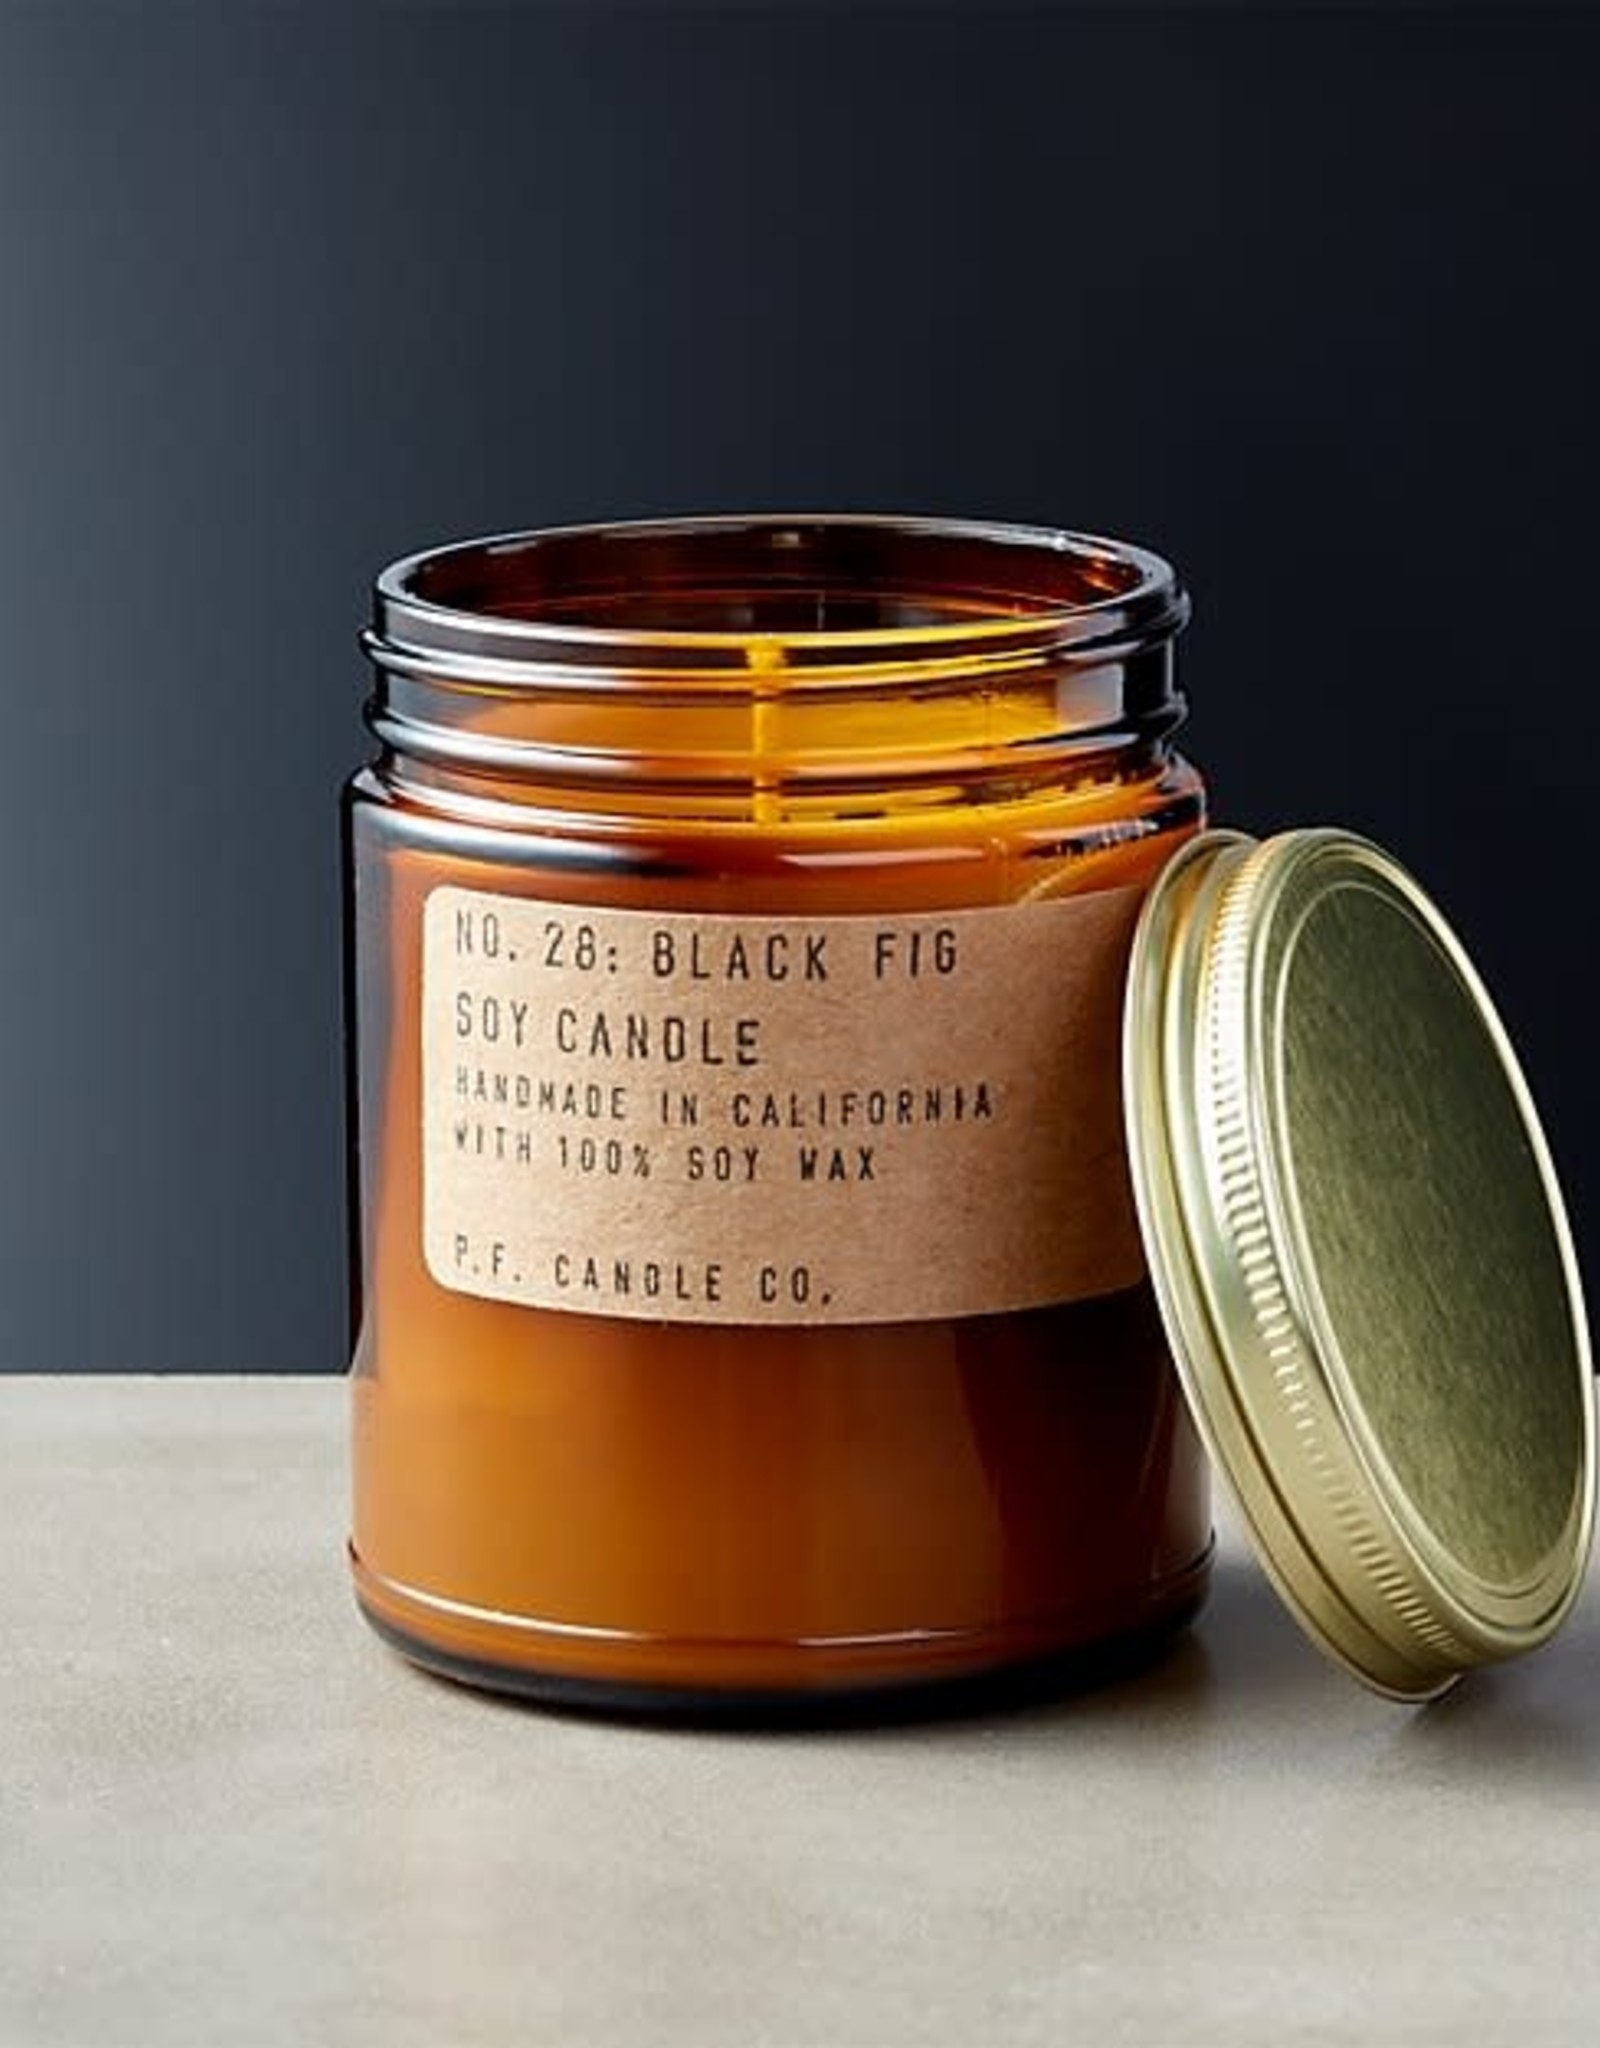 P.F. Candle Co. Black Fig Soy Candle